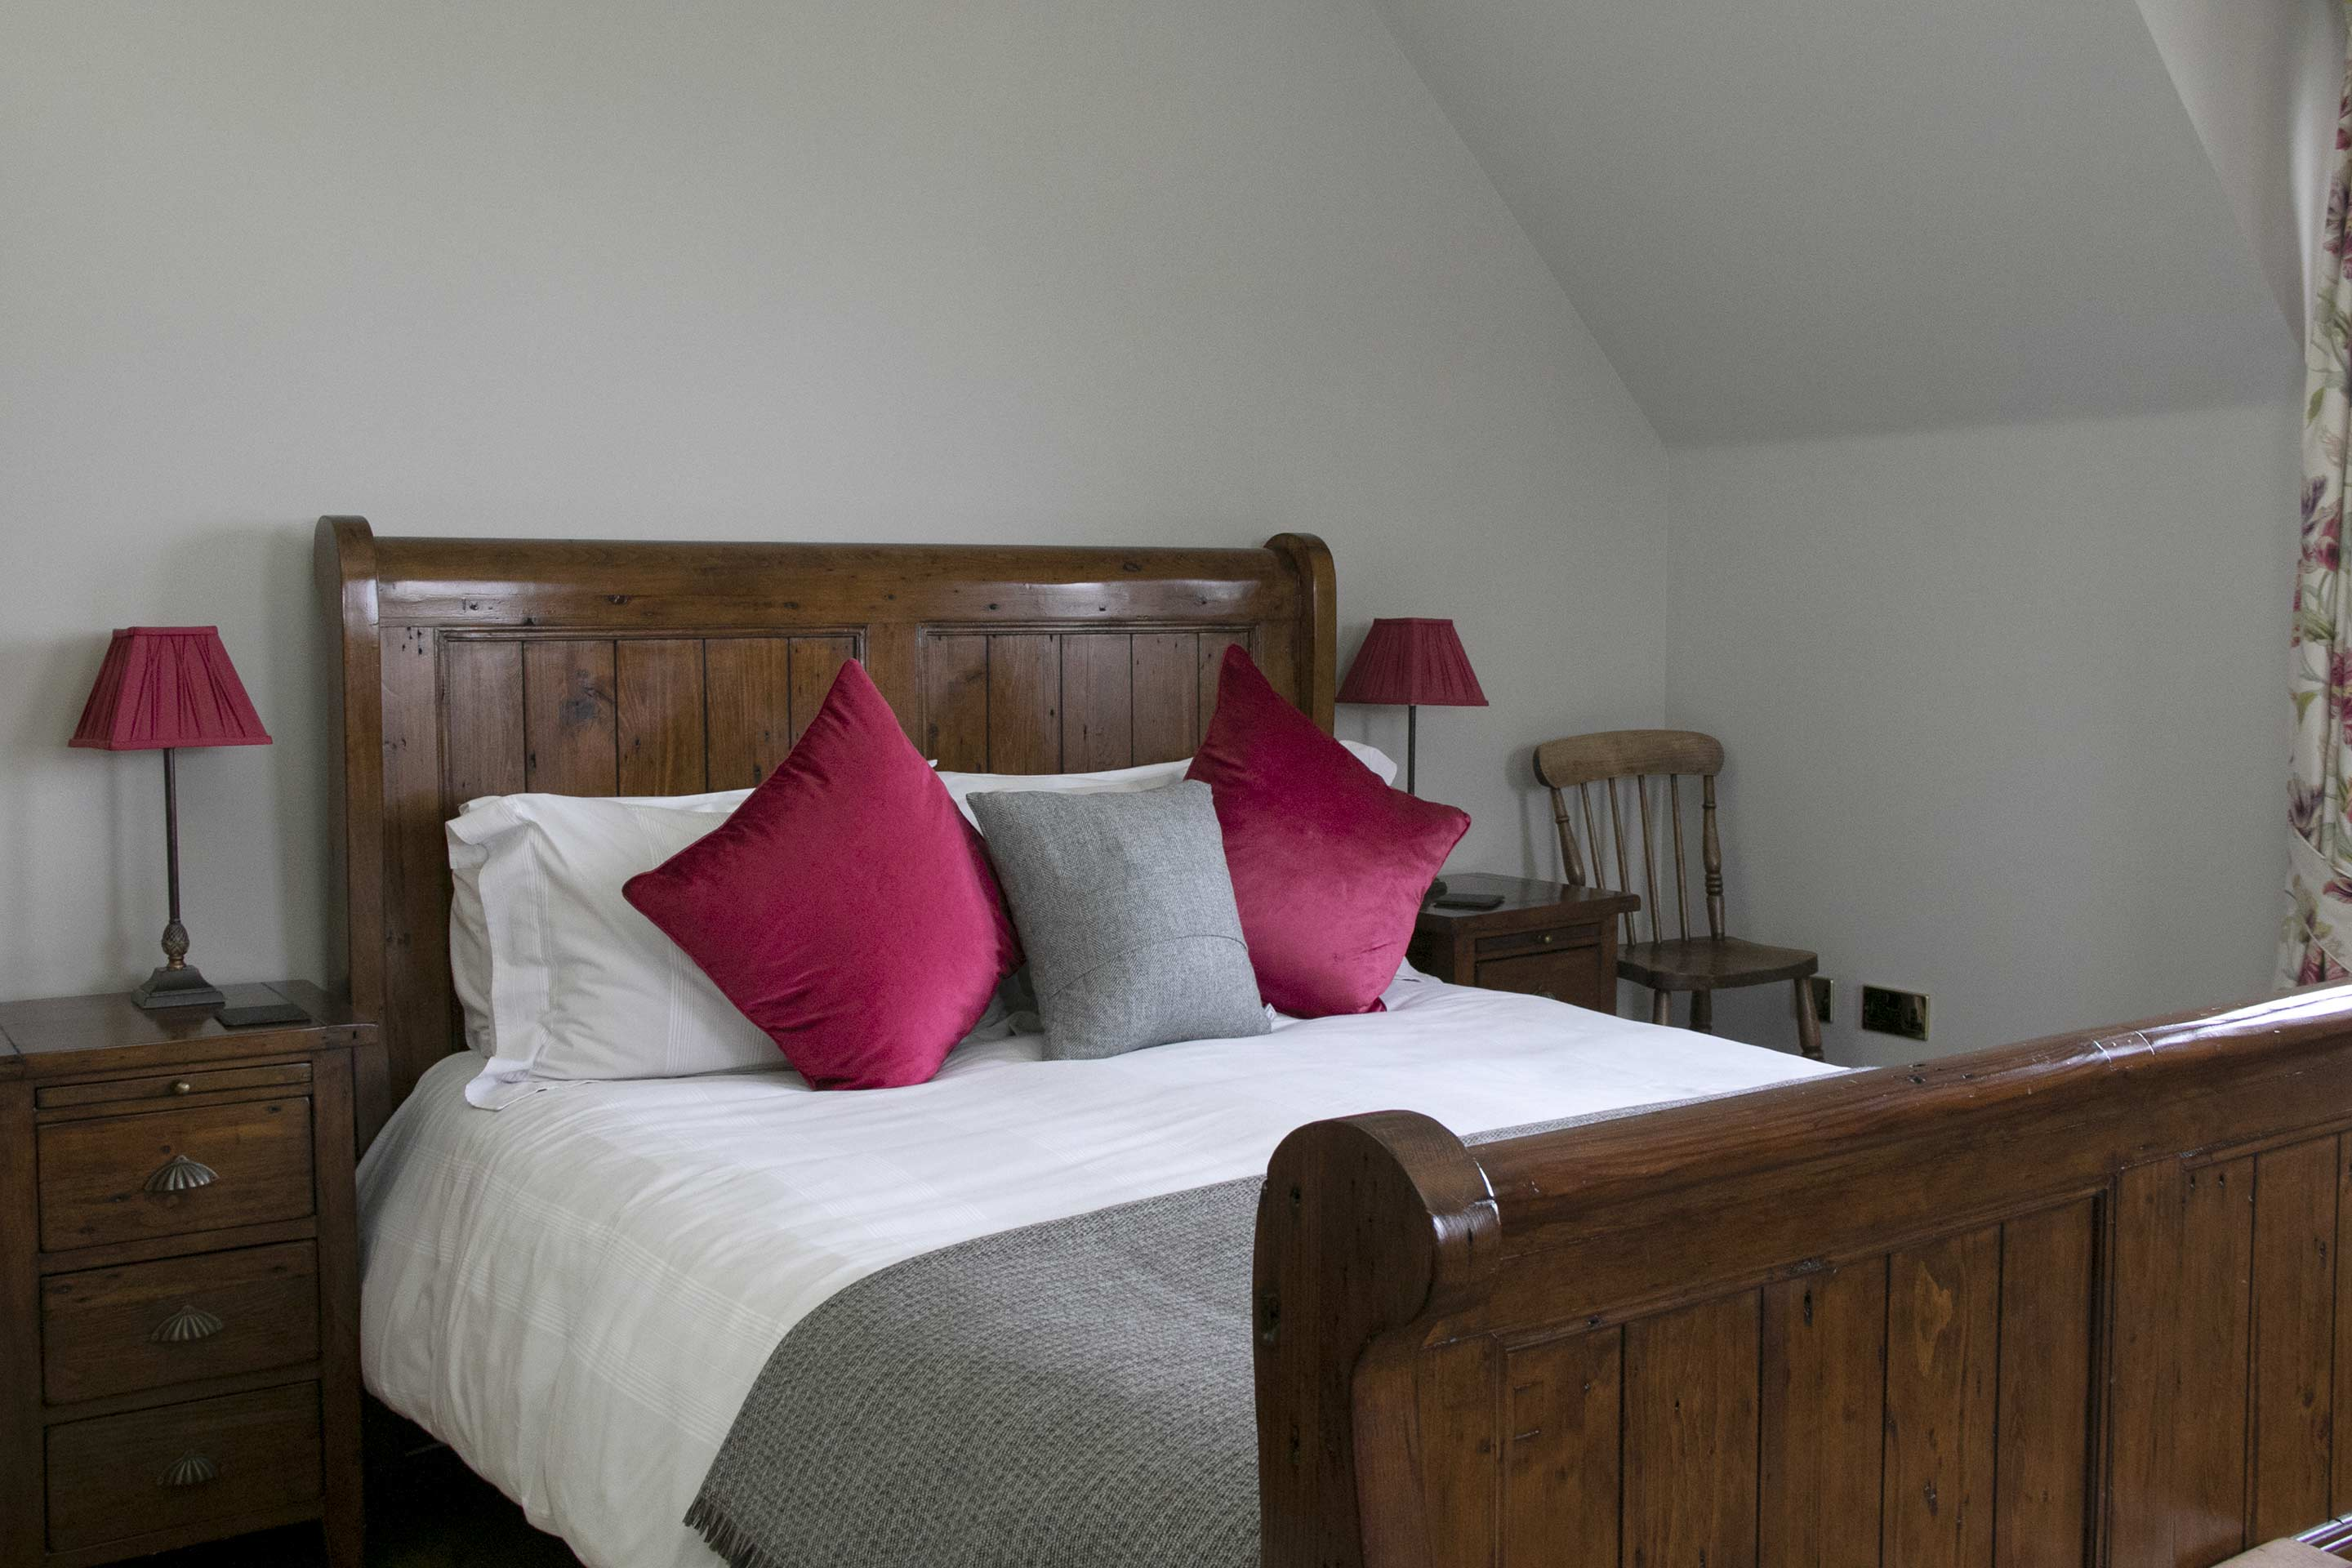 https://creaghouseskye.co.uk/wp-content/uploads/2019/09/creag-house-bedroom-2-004-1.jpg